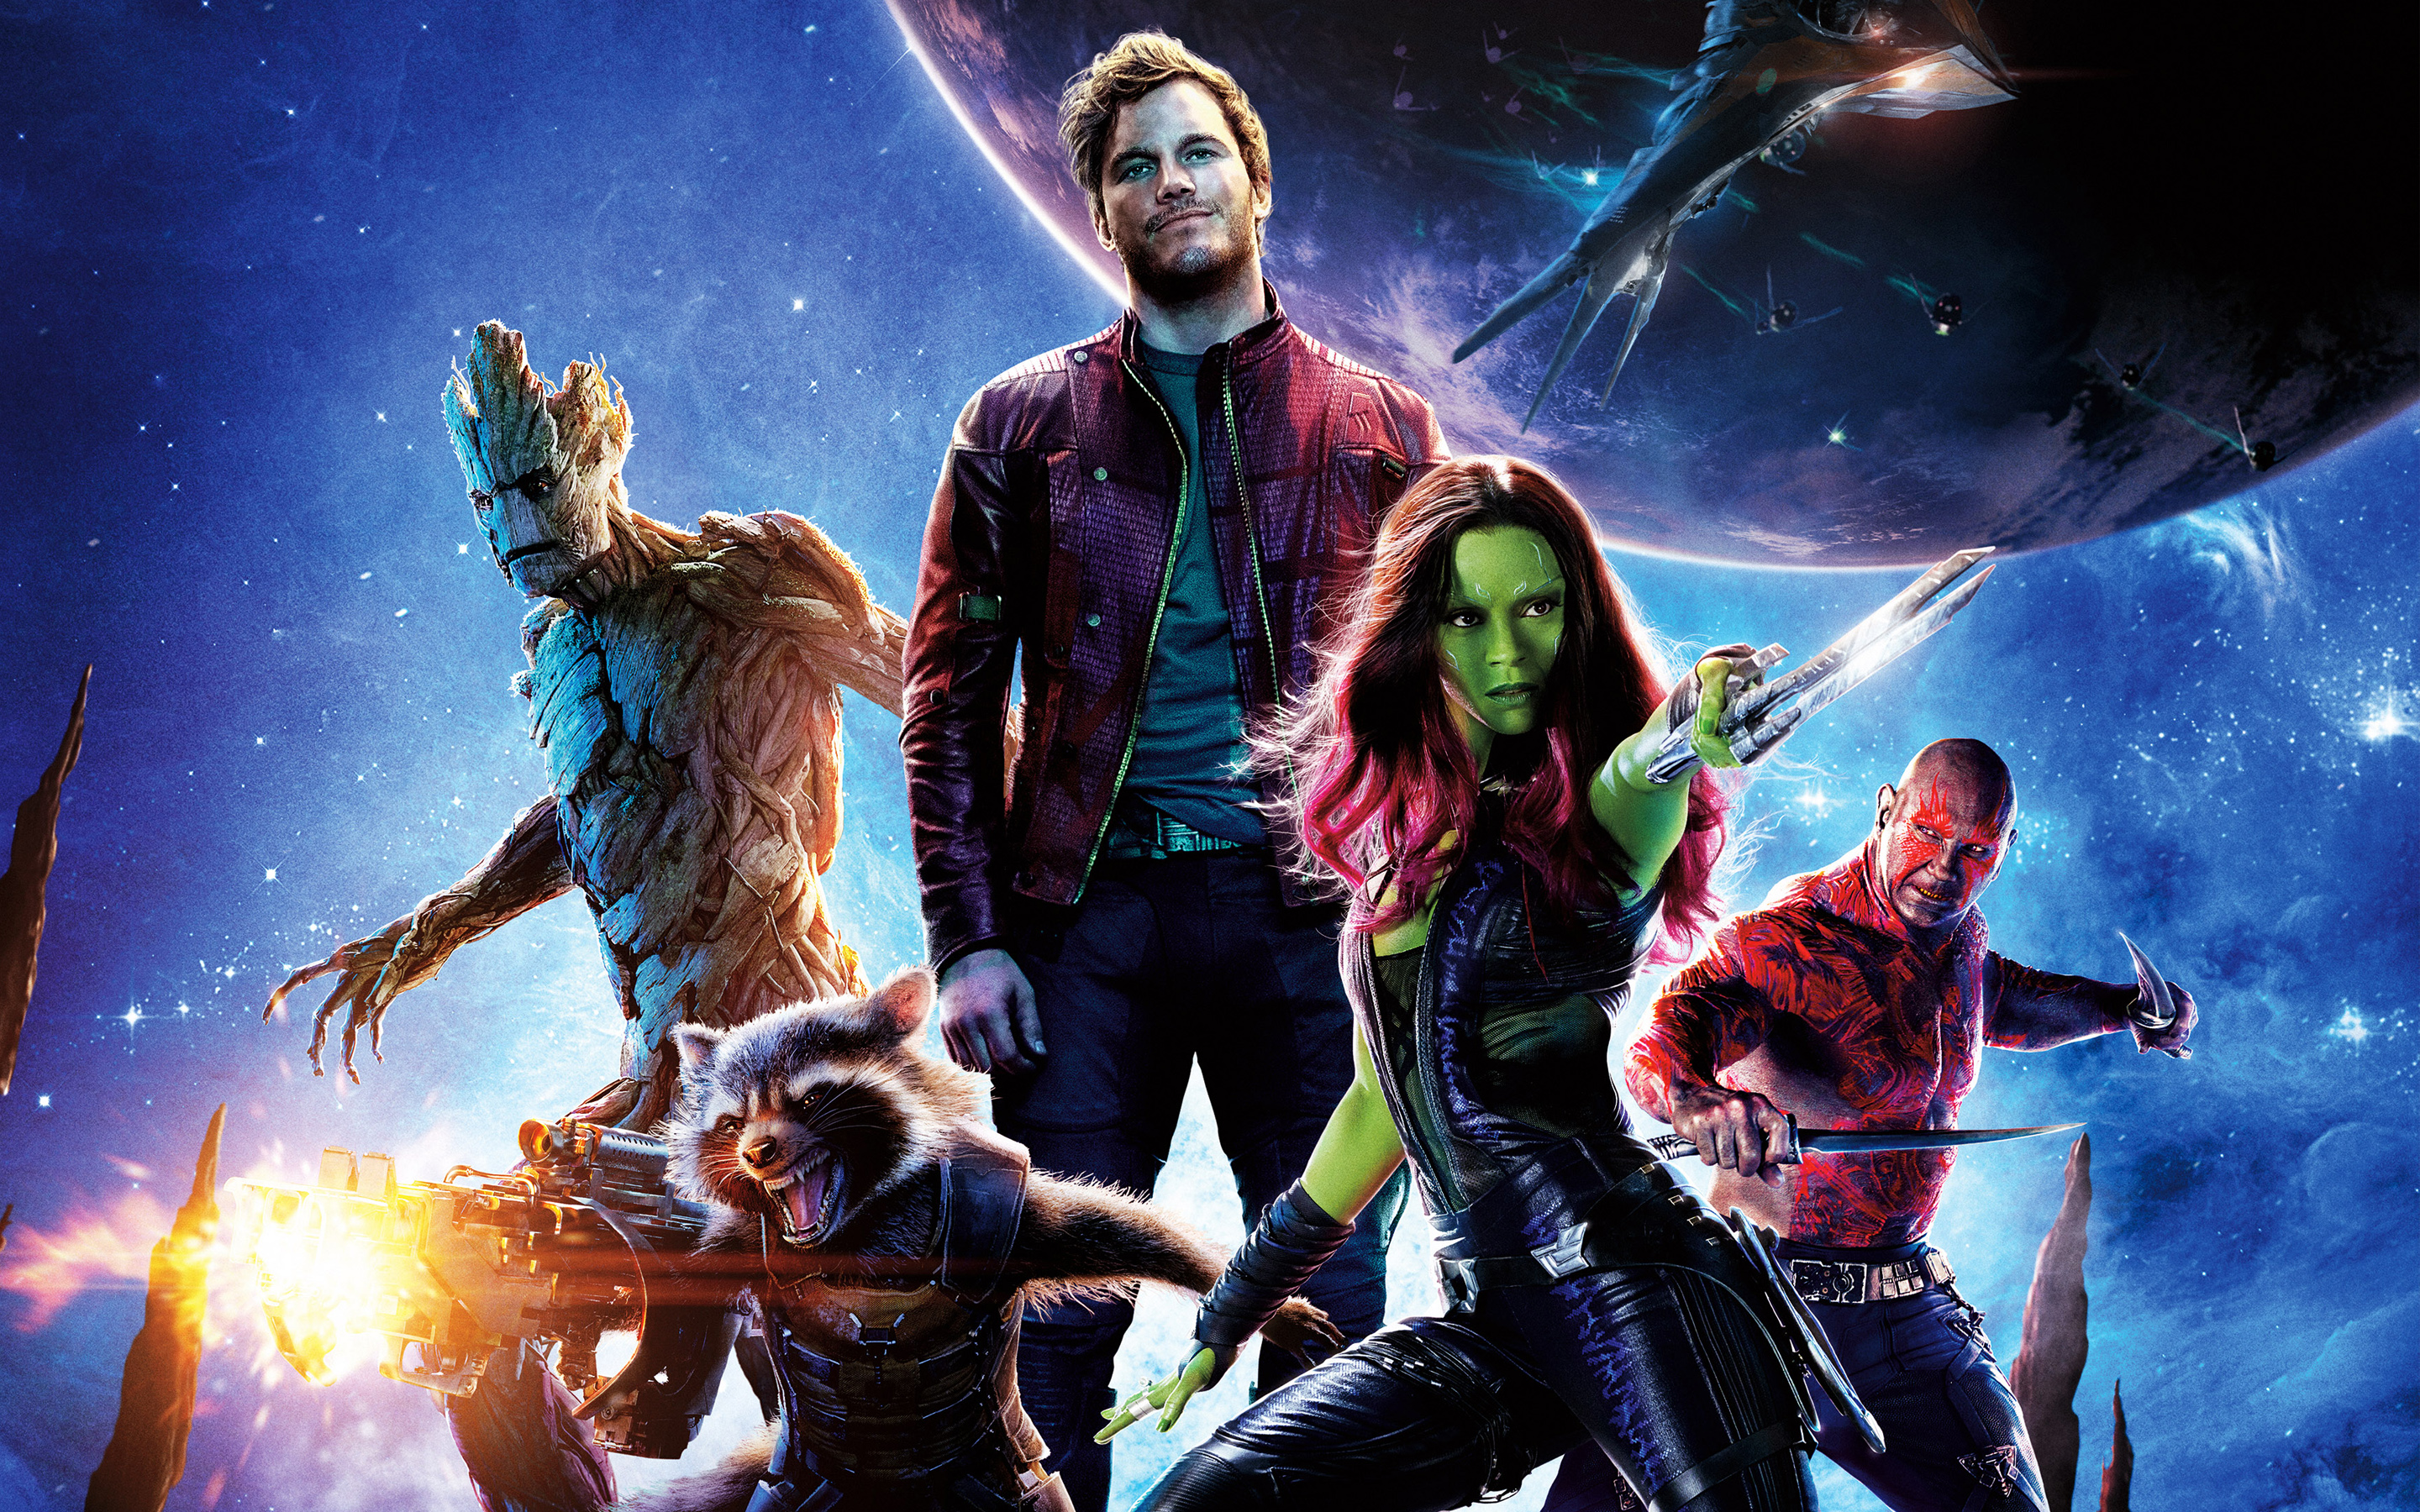 2014 Guardians of the Galaxy 1254.02 Kb